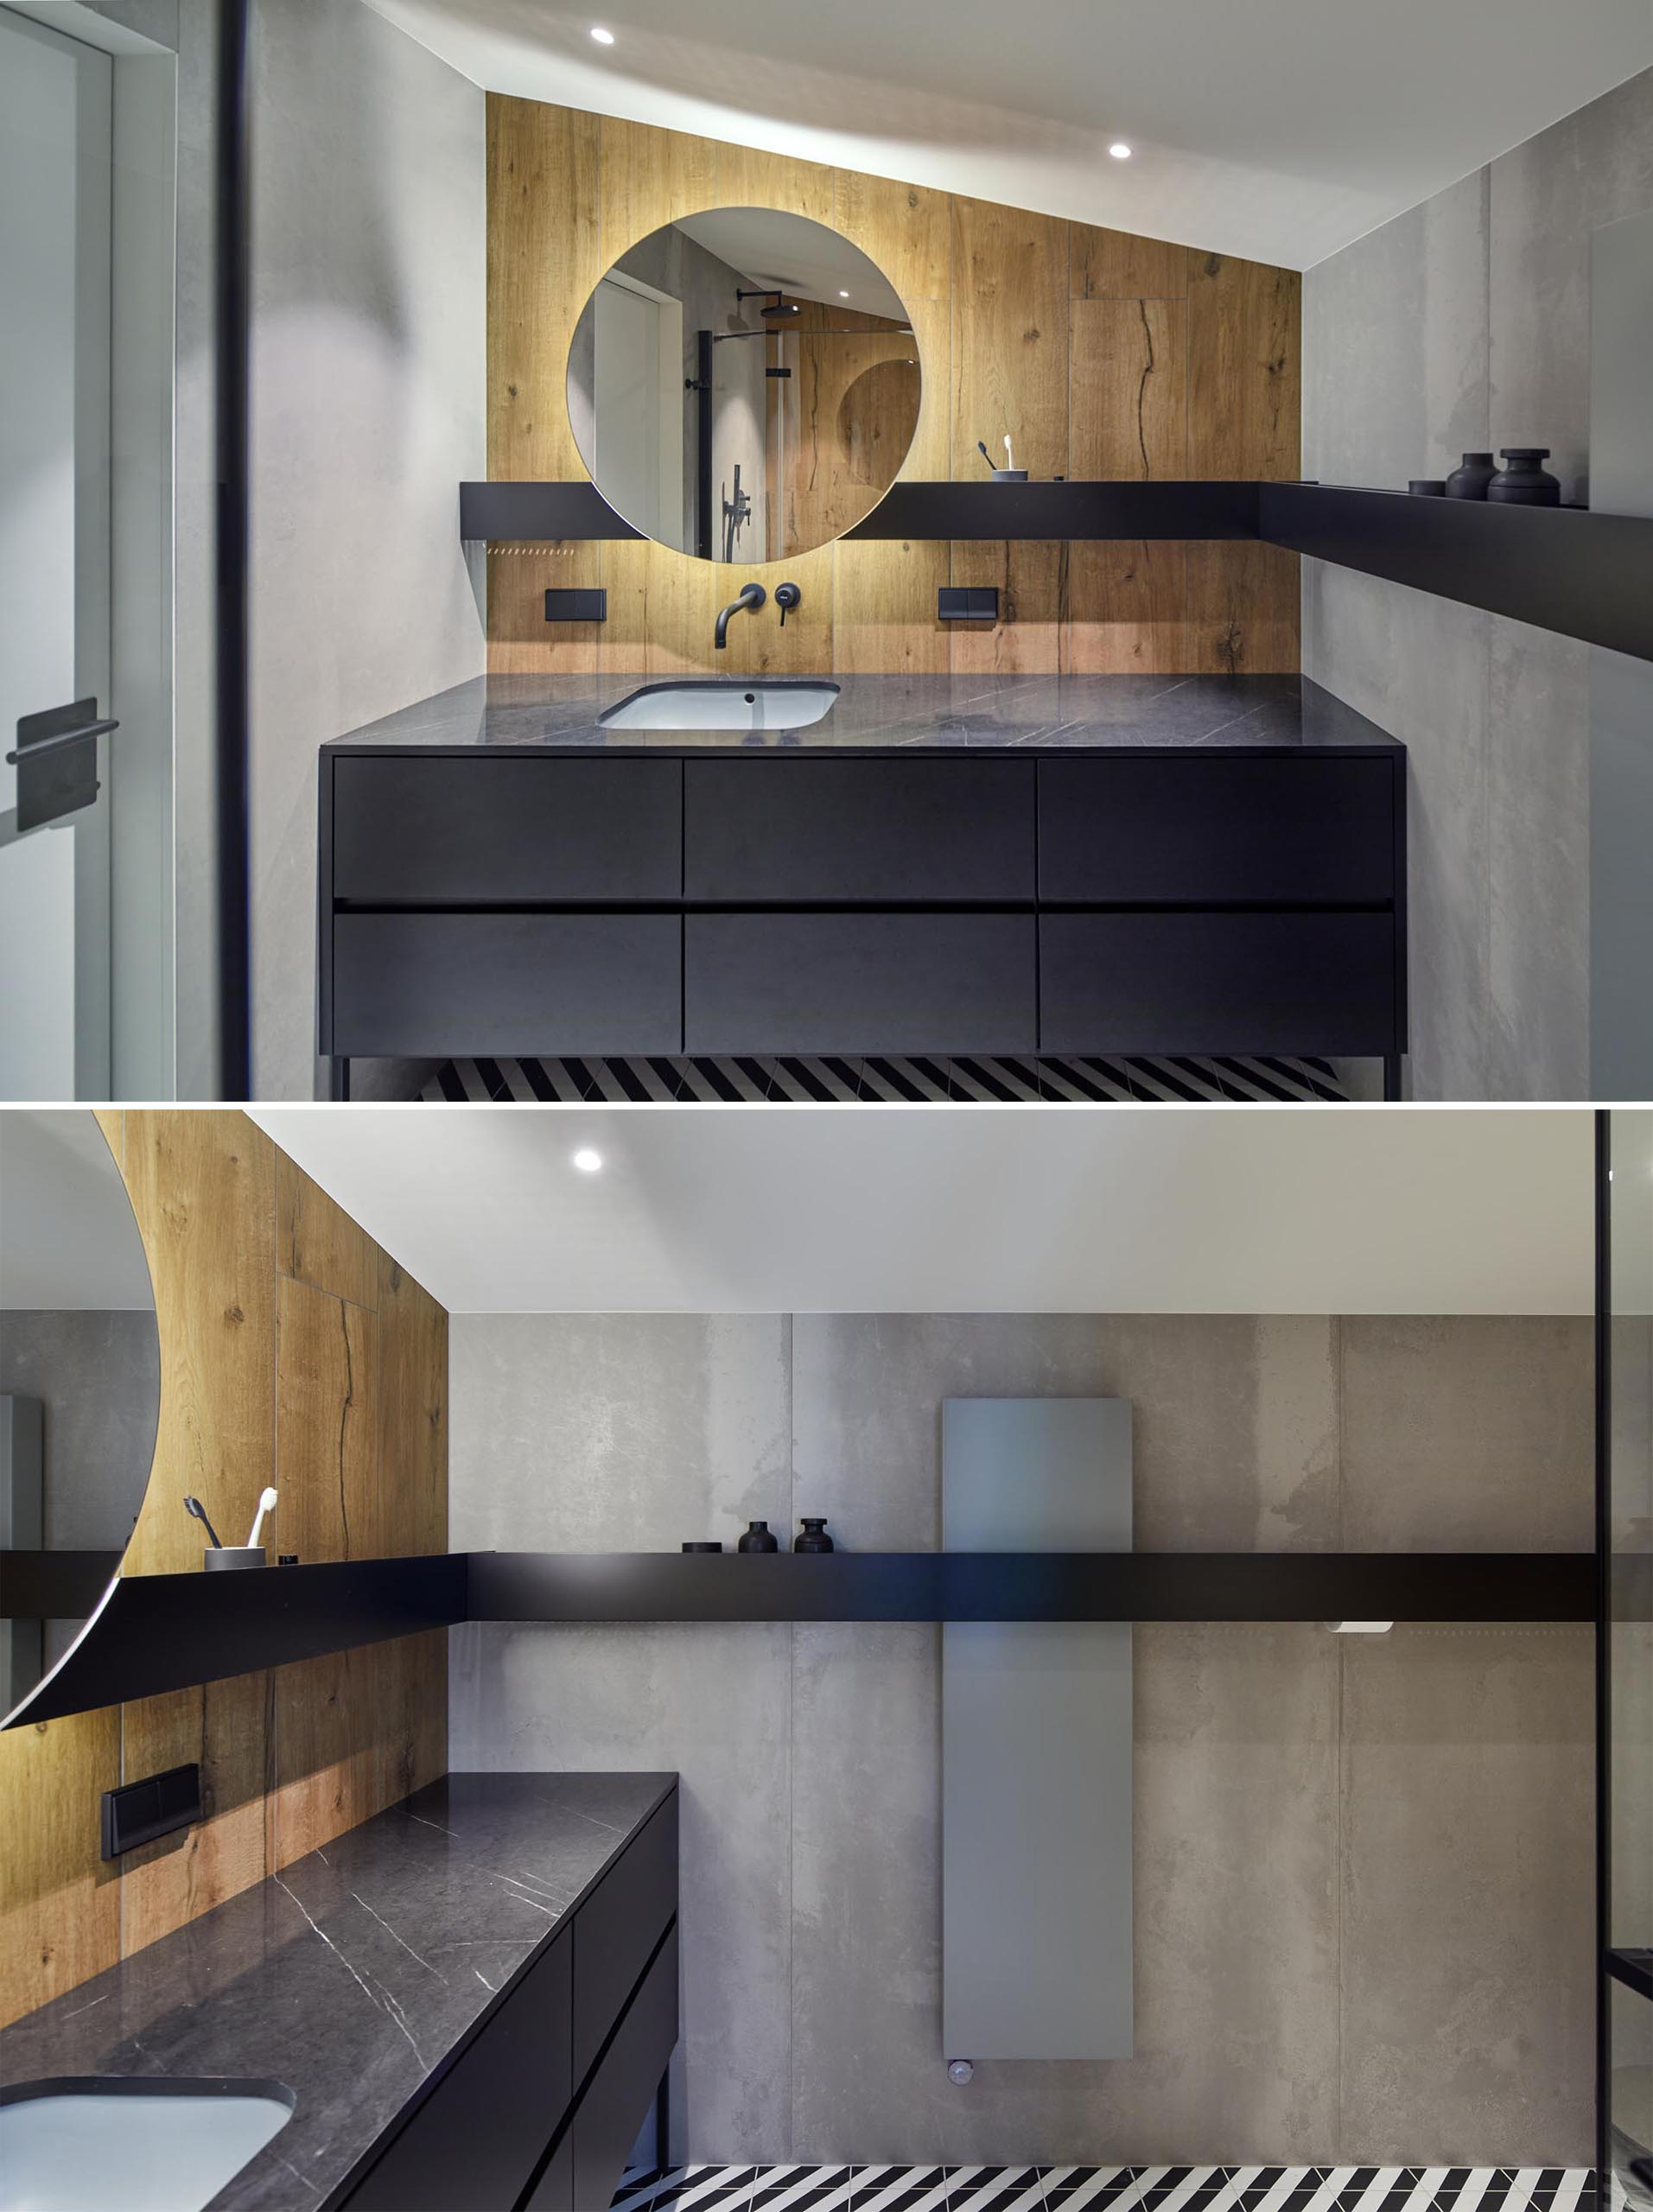 In this modern bathroom, there's a wood accent wall, backlit round mirror, and a black shelf that wraps around the room.